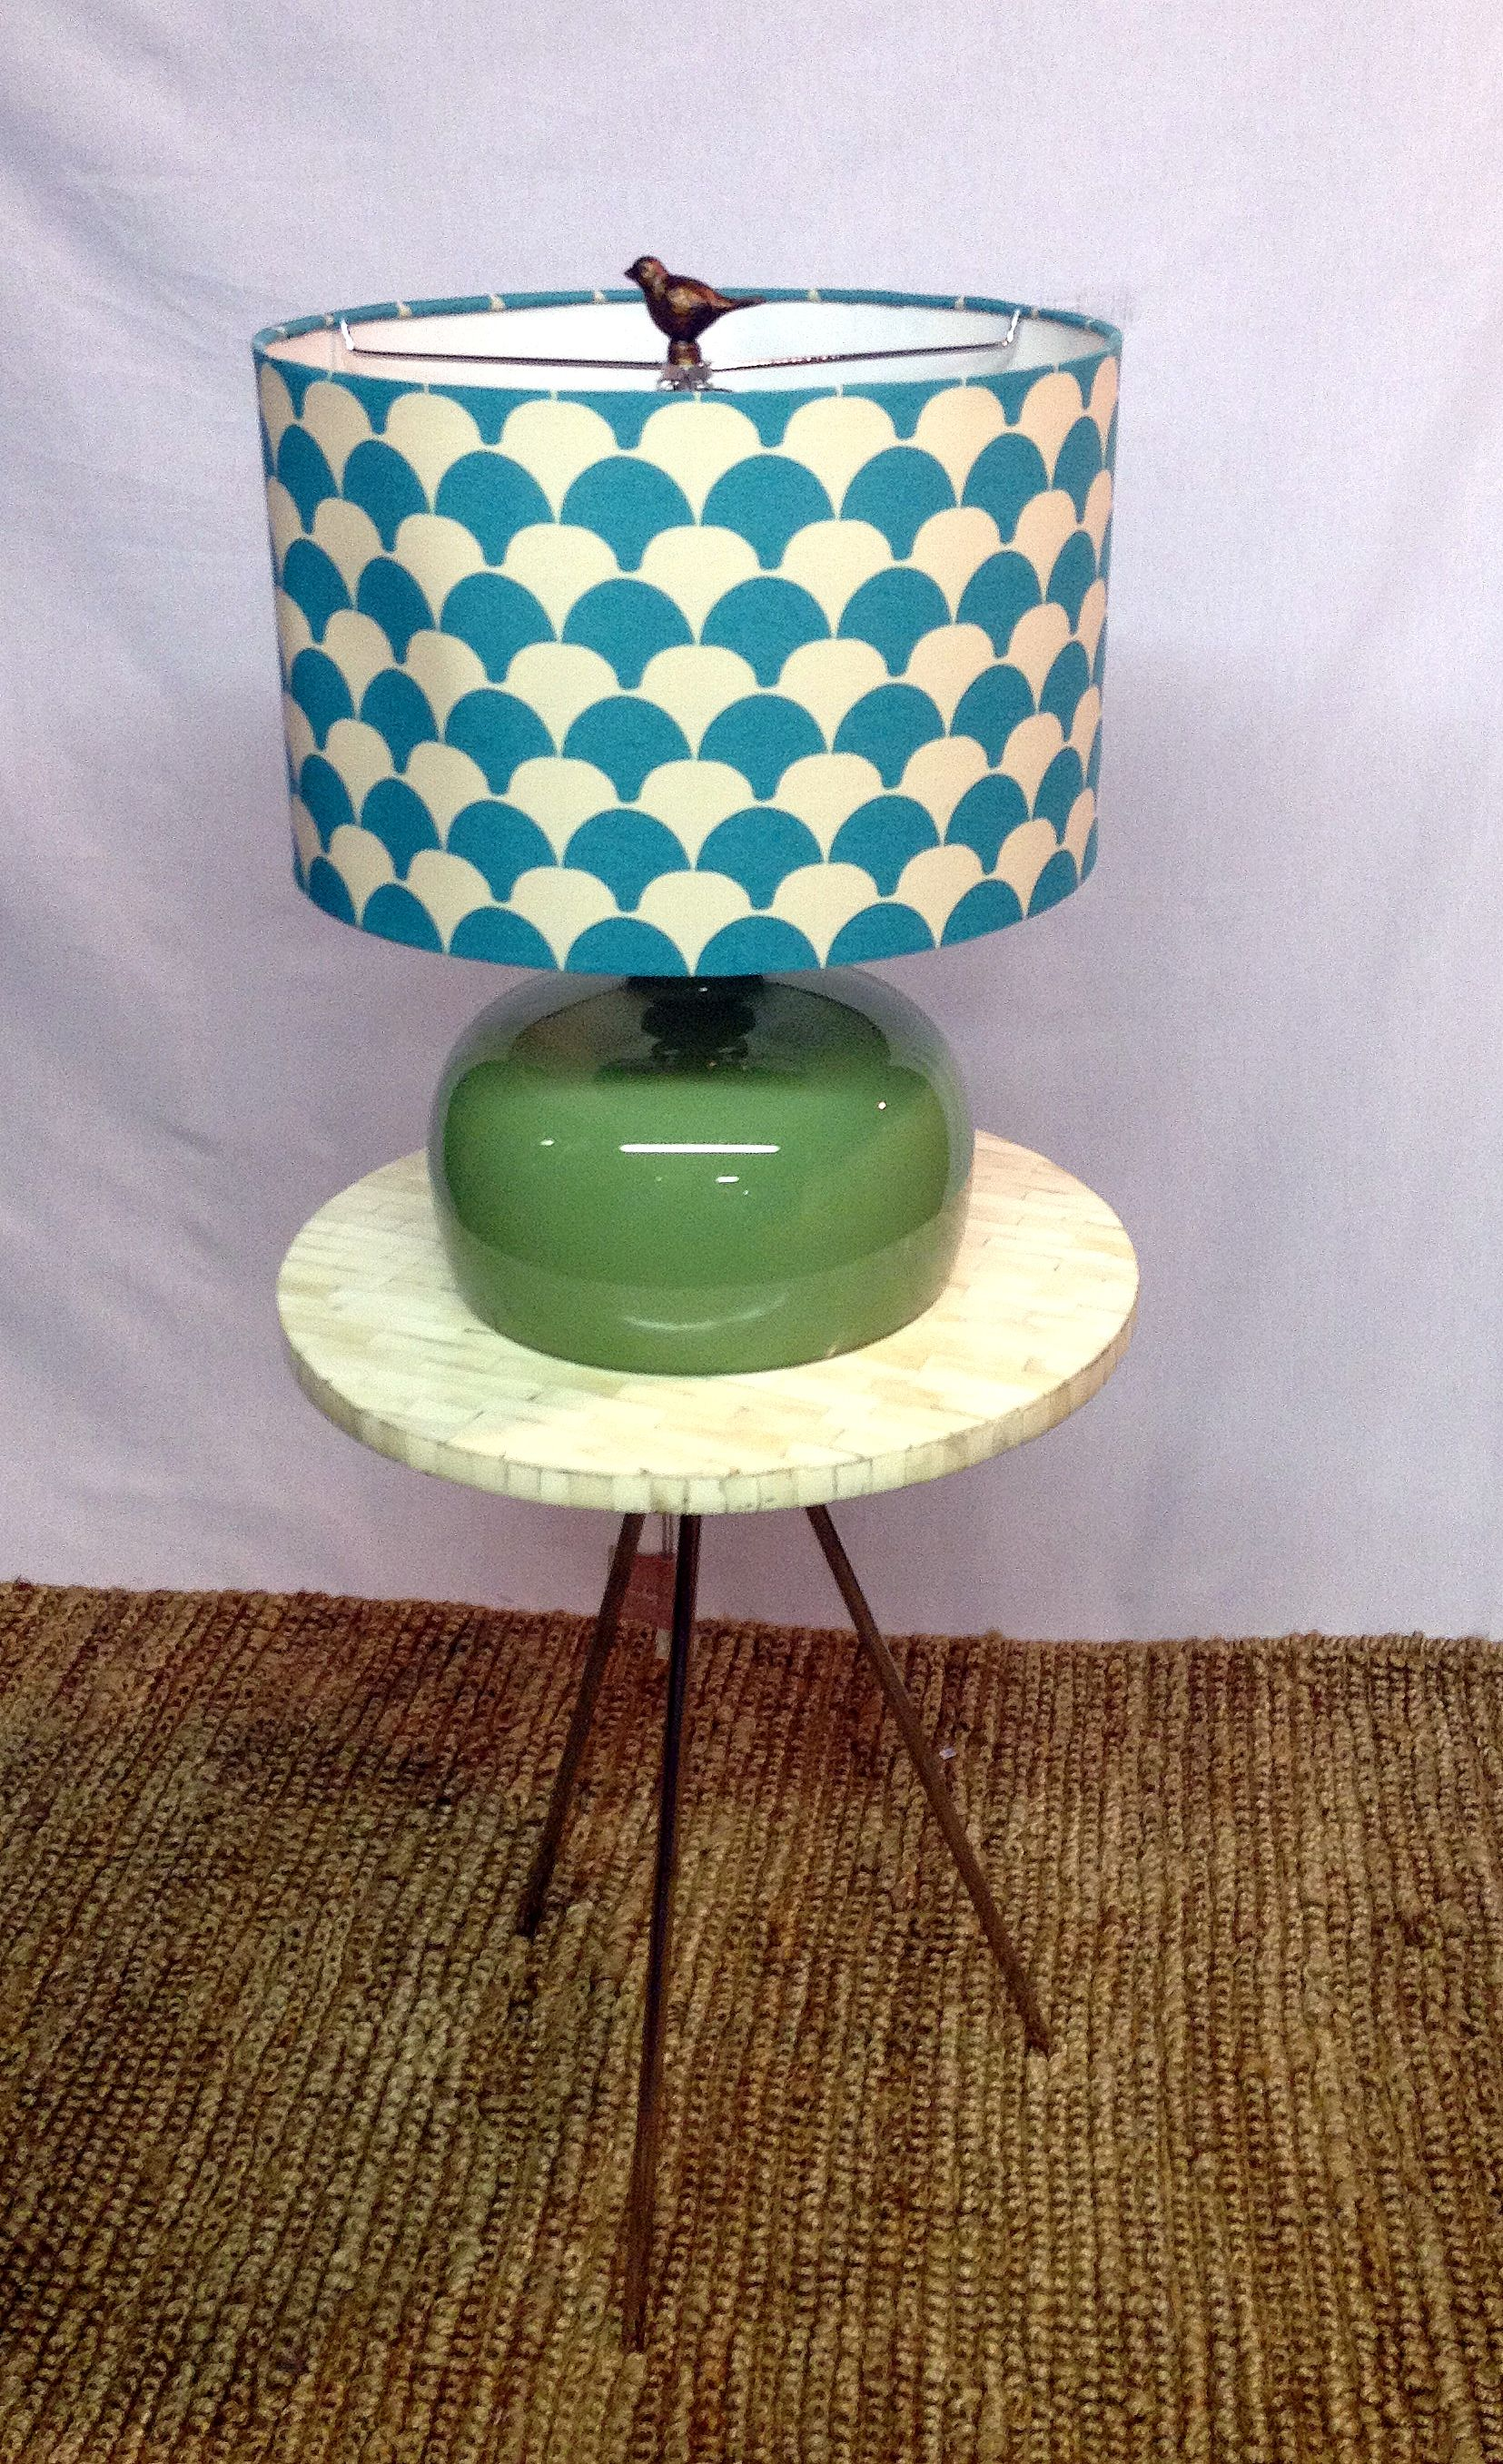 fun colored lamp great for spicing up a room with images